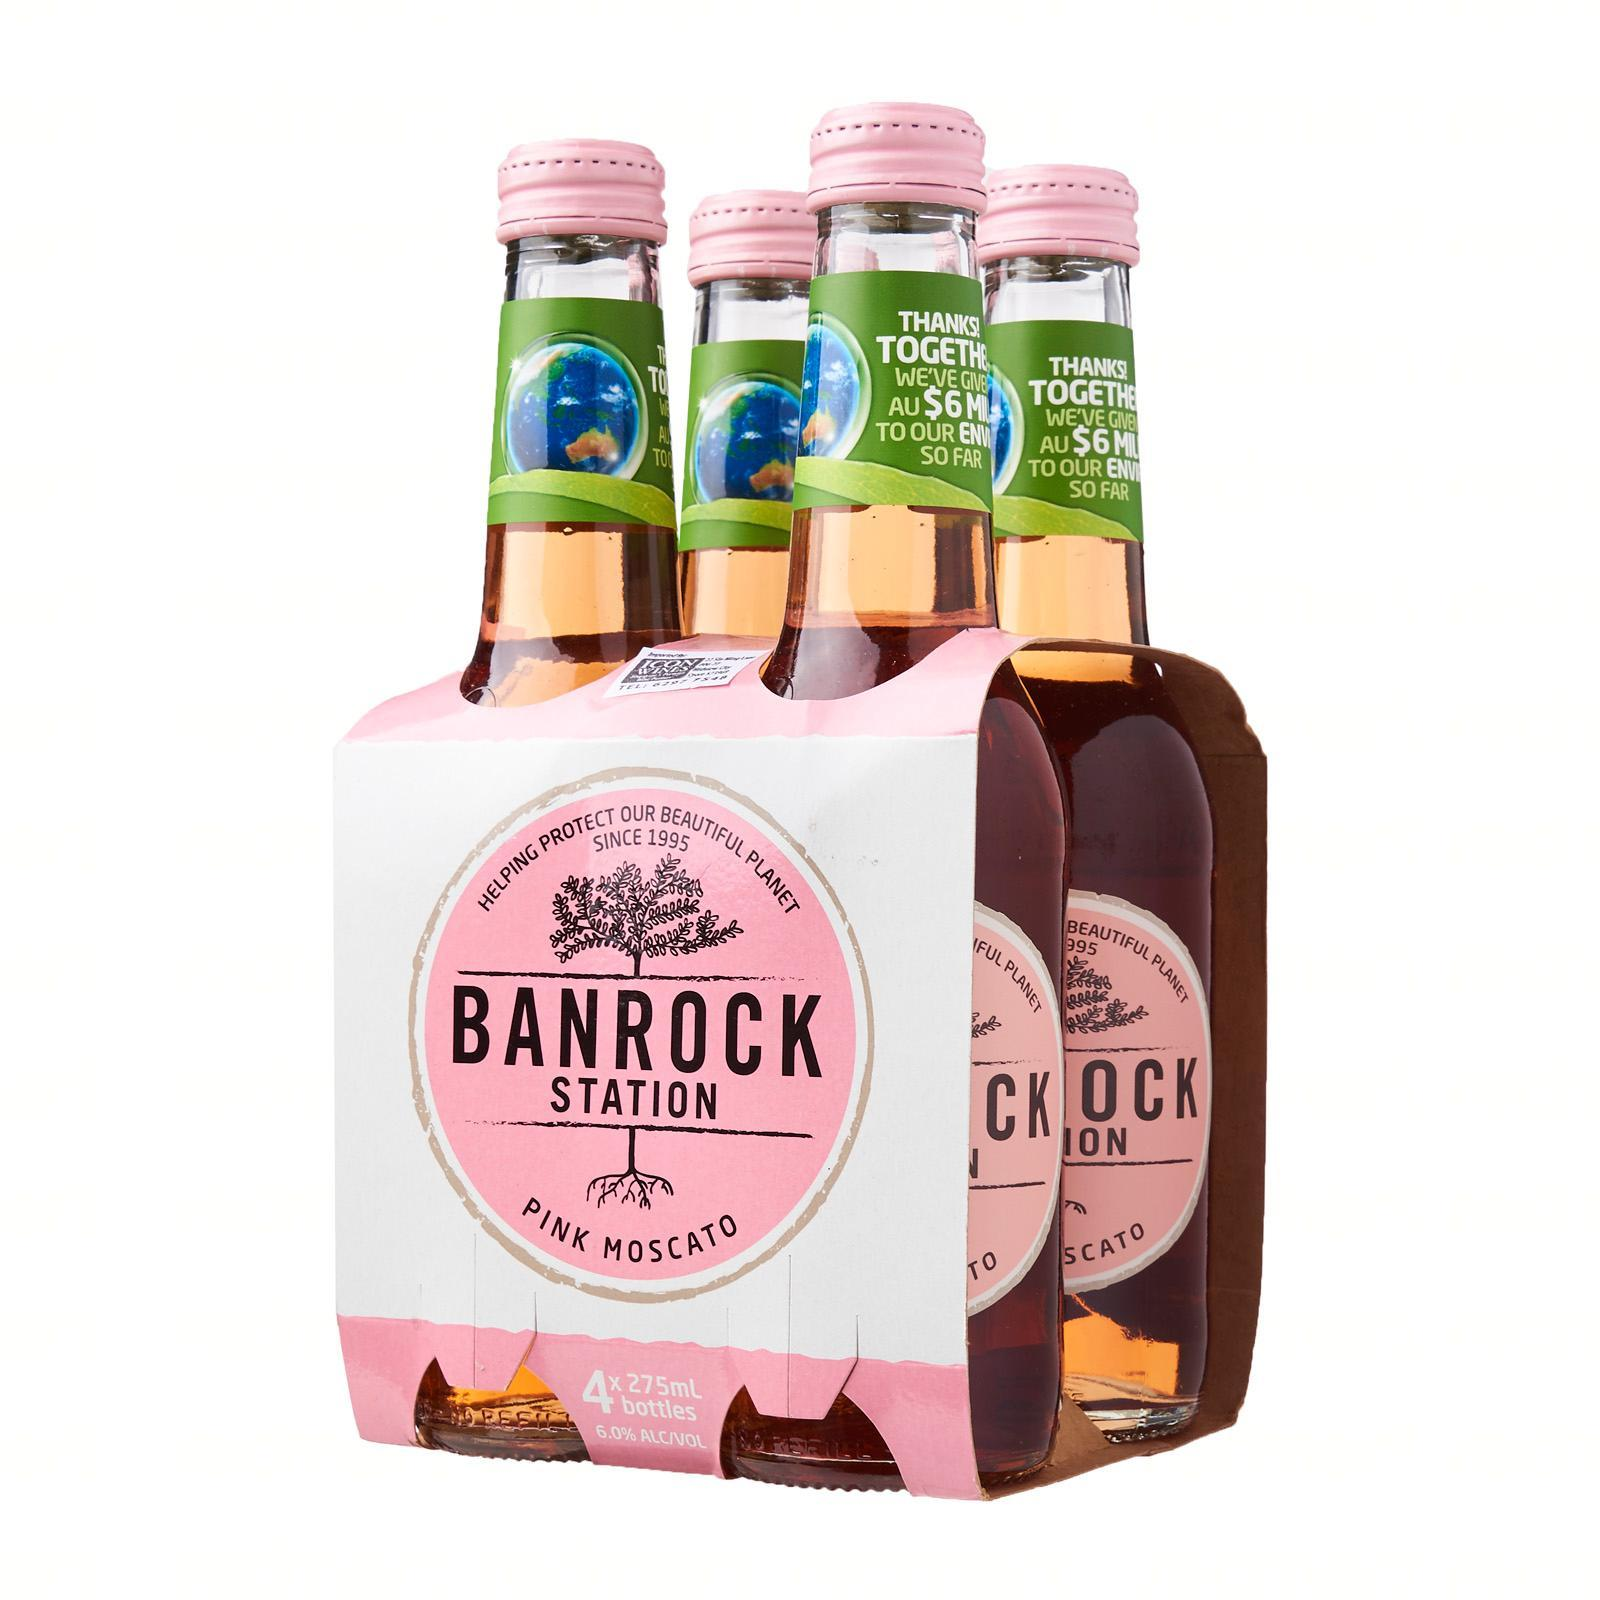 Banrock Station Pink Moscato